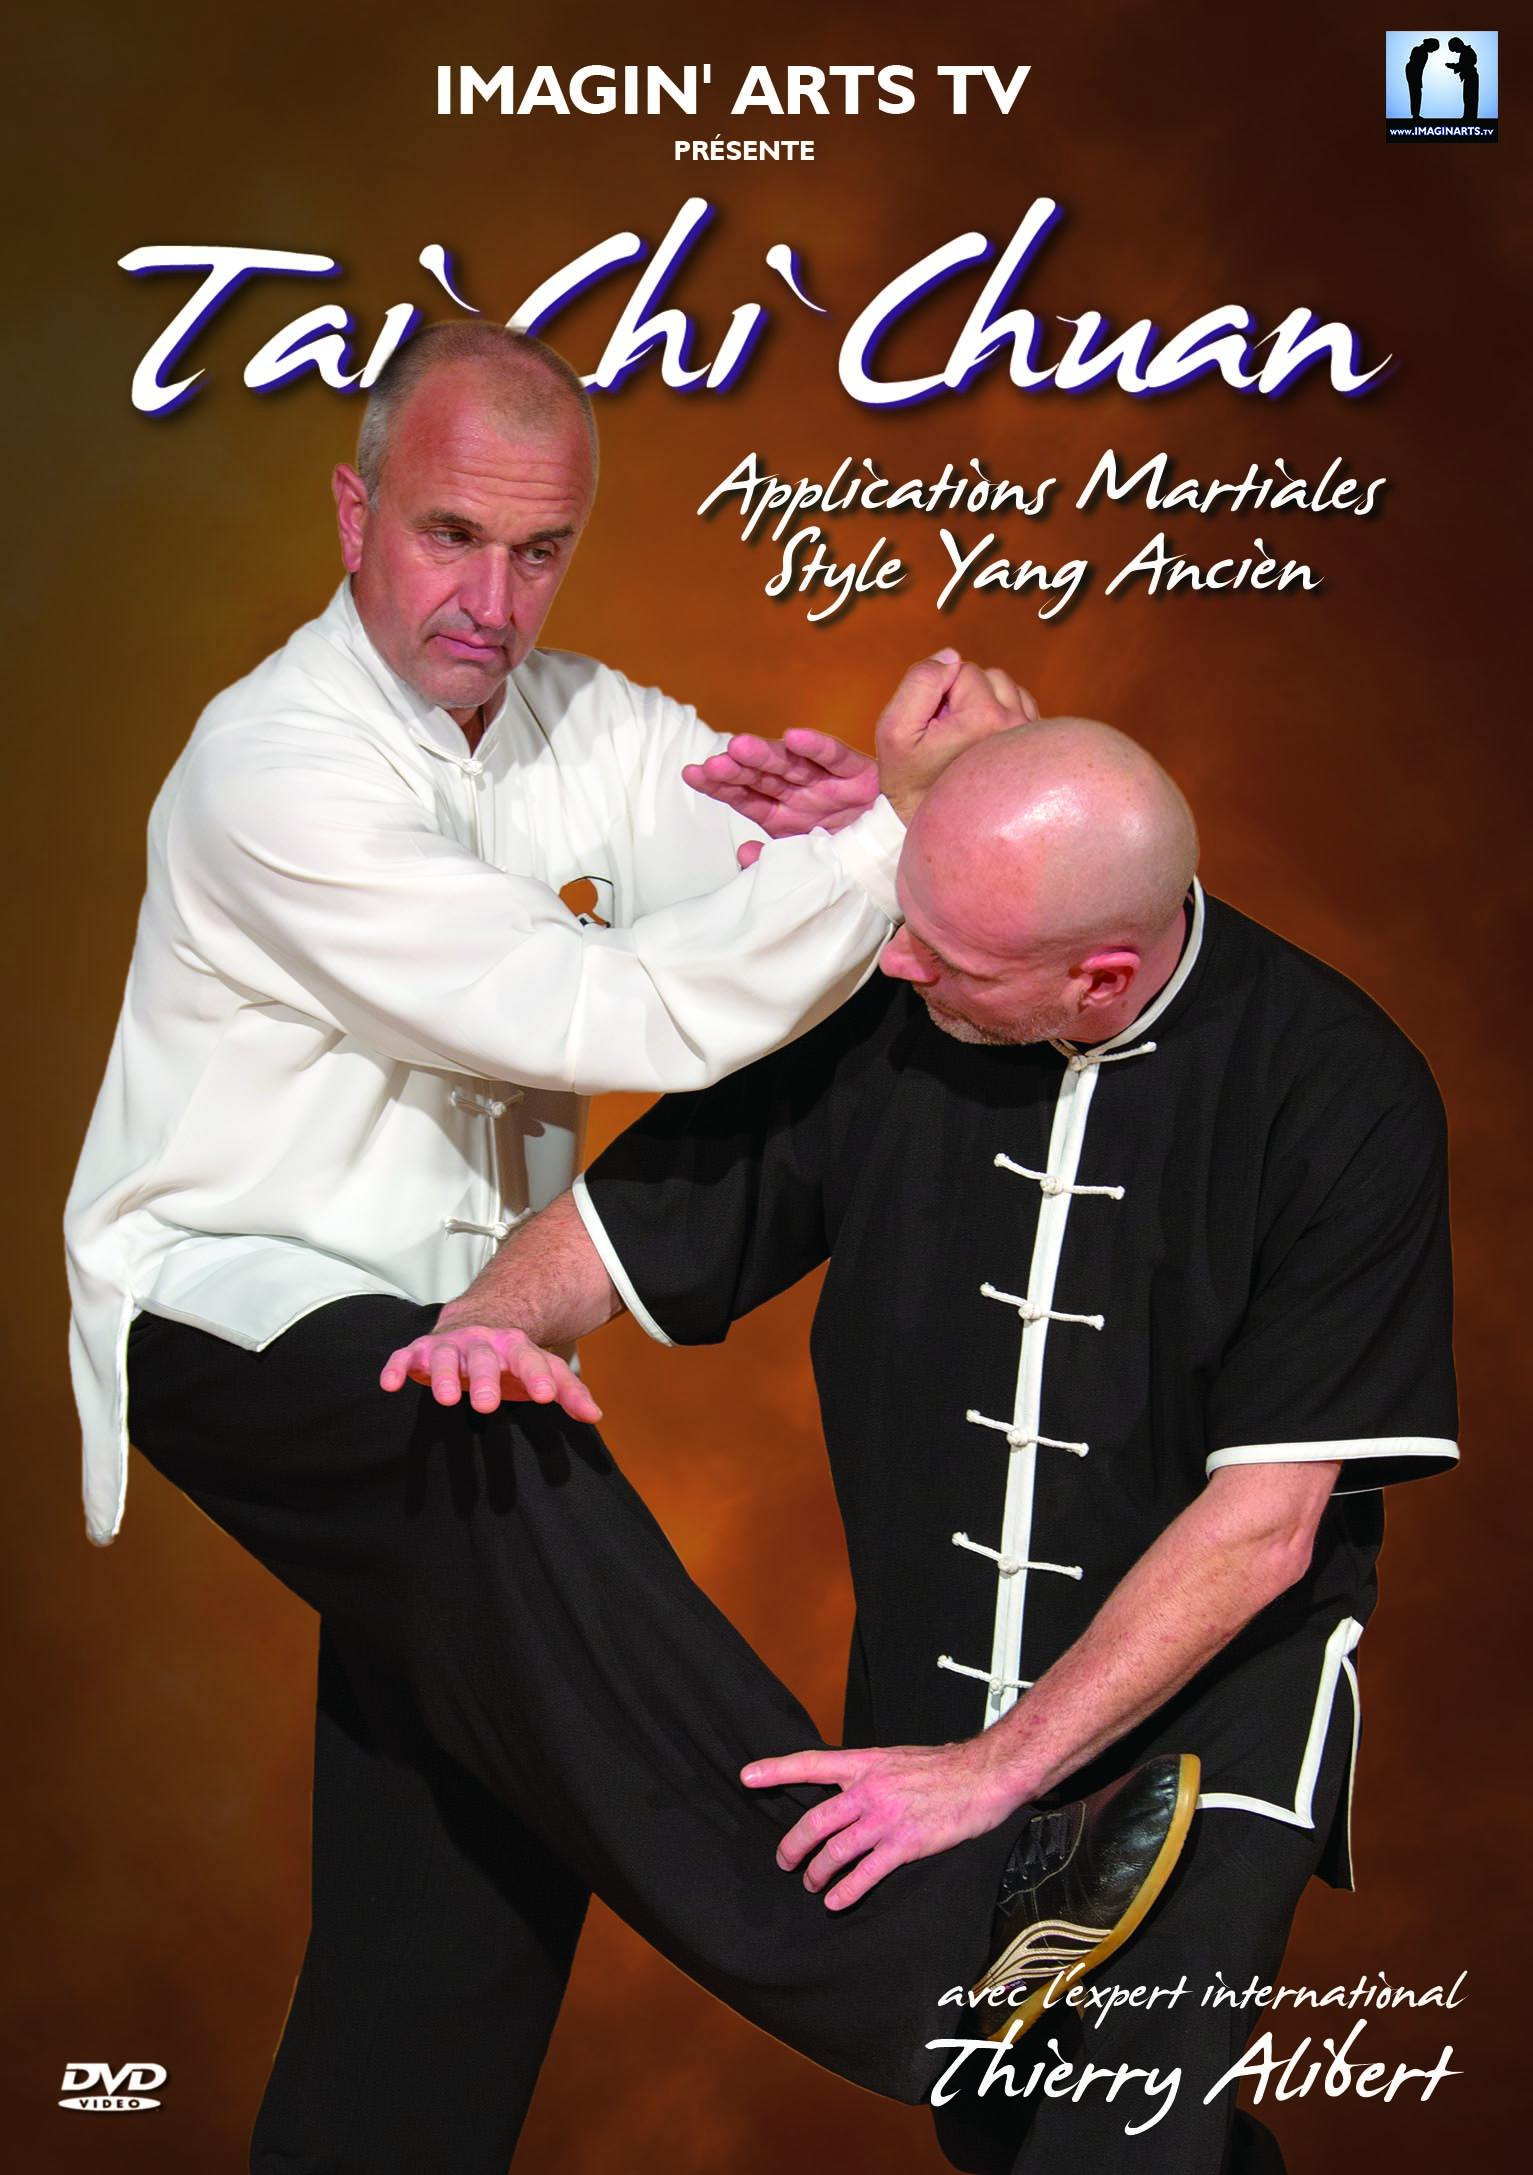 Tai chi chuan - applications martiale style yang ancien - dvd